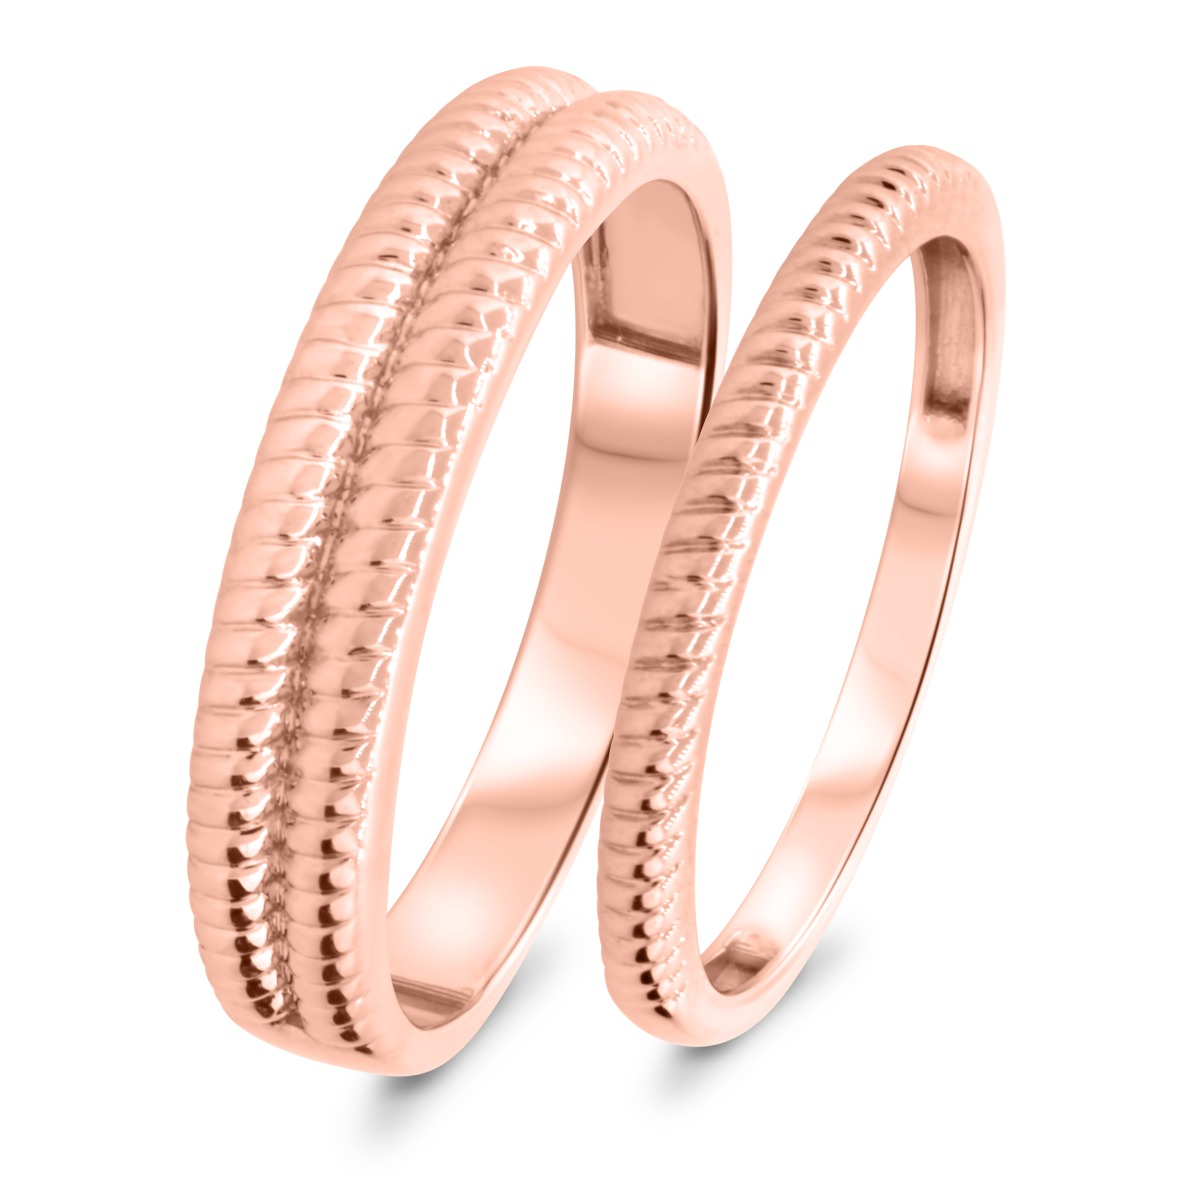 Matching Wedding Band Set 14K Rose Gold